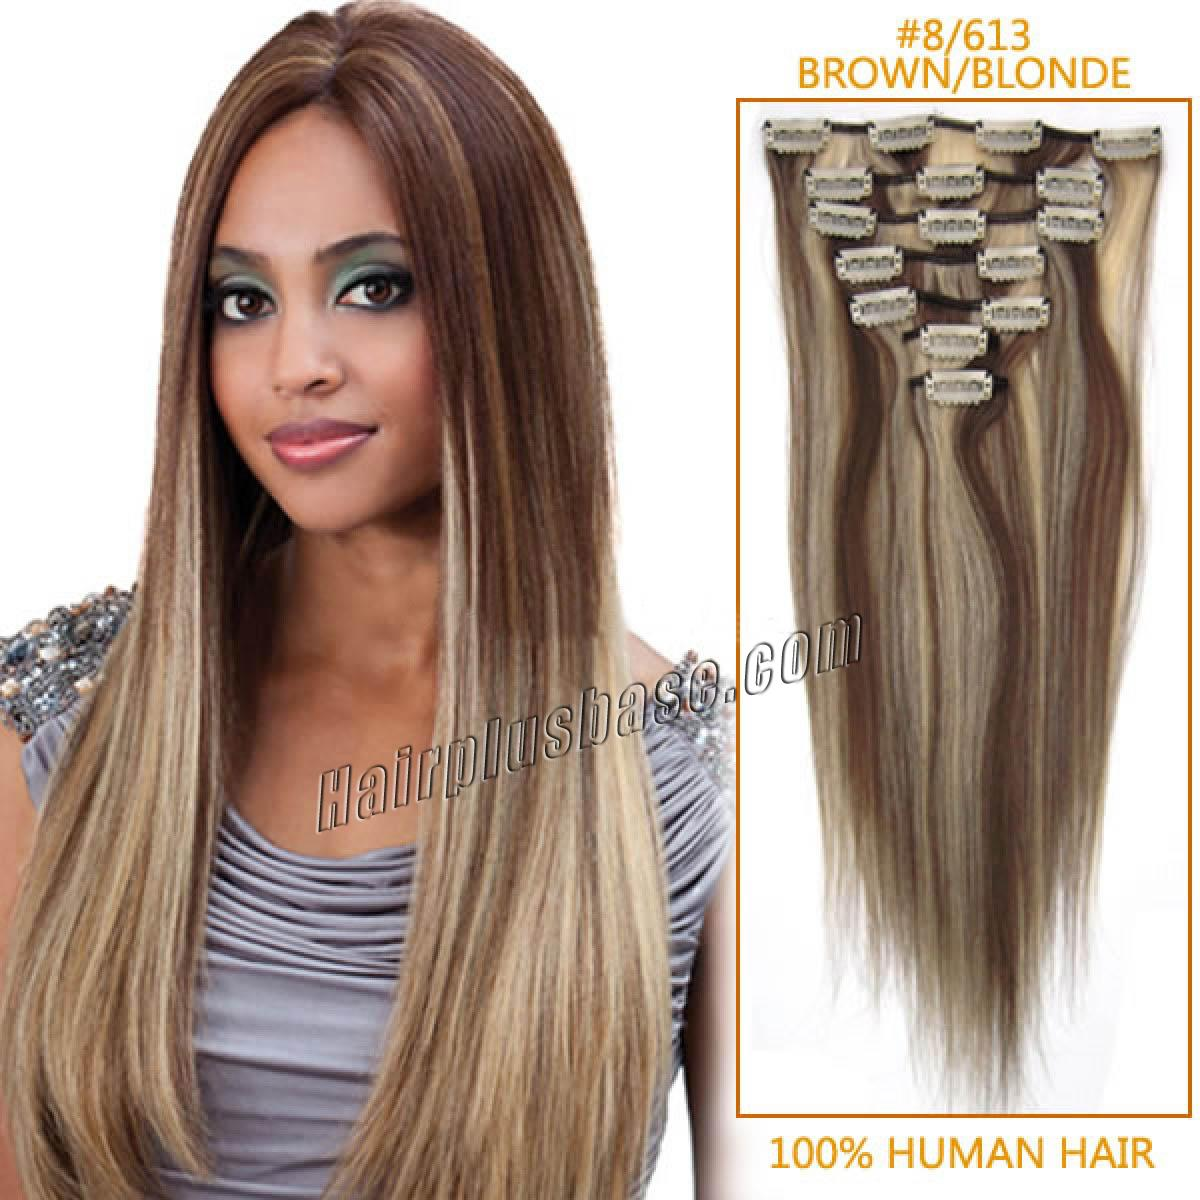 28 inch 8613 brownblonde clip in human hair extensions review pmusecretfo Images